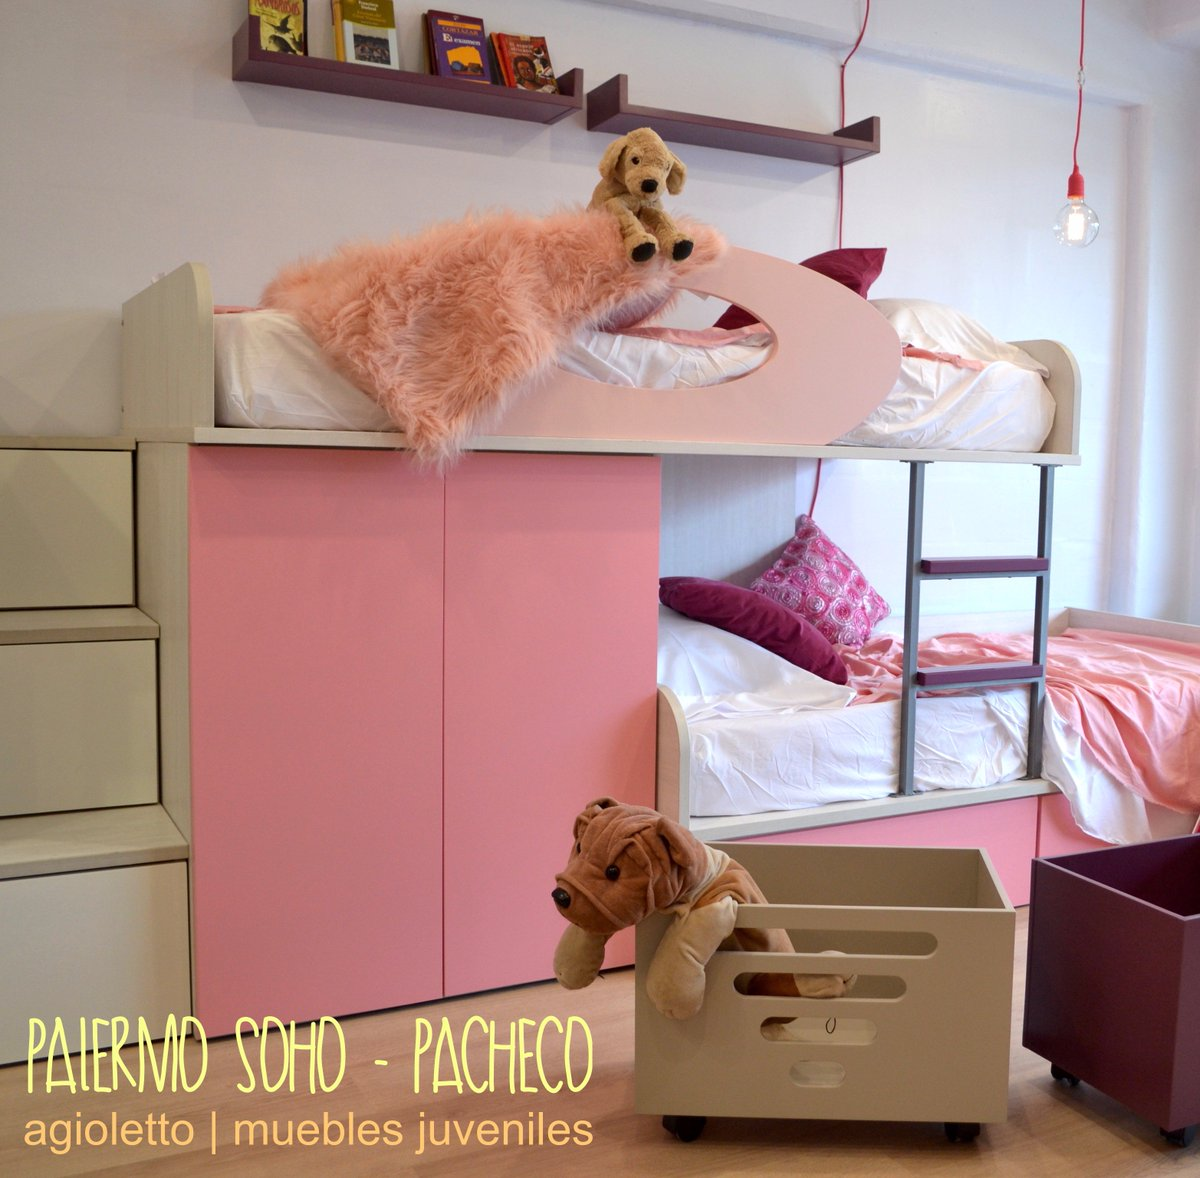 Agioletto Agioletto Twitter # Muebles Pacheco